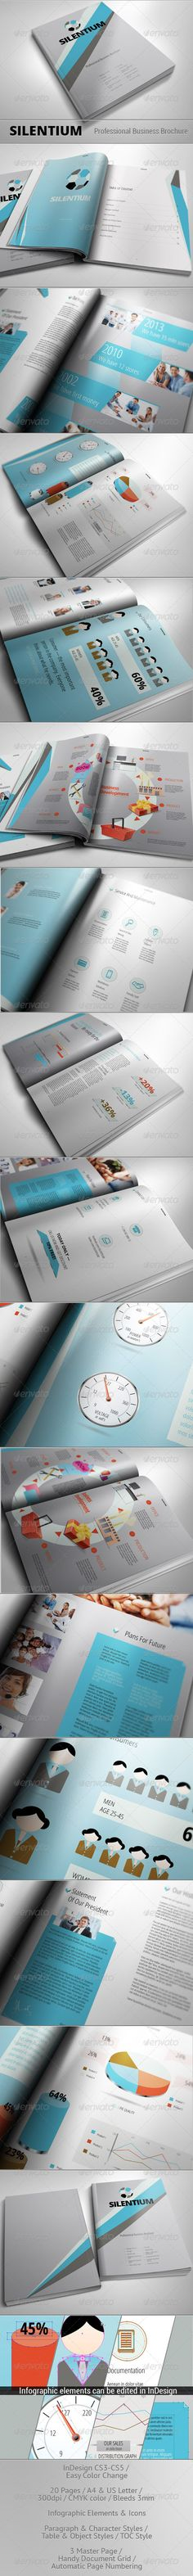 SILENTIUM - Modern Business Brochure  #GraphicRiver         SILENTIUM – Modern Business Brochure 18-page professional business InDesign brochure.    Perfect for corporate use  Features:    InDesign  CS3 -CS5 files  300dpi / CMYK color / bleeds 3mm   Easy Color Change  Free Font Used  Infographic Elements & Icons. Infographics can be edited in InDesign (except the icons in the Business Development section and shadows under objects. It's linked as PSD files).